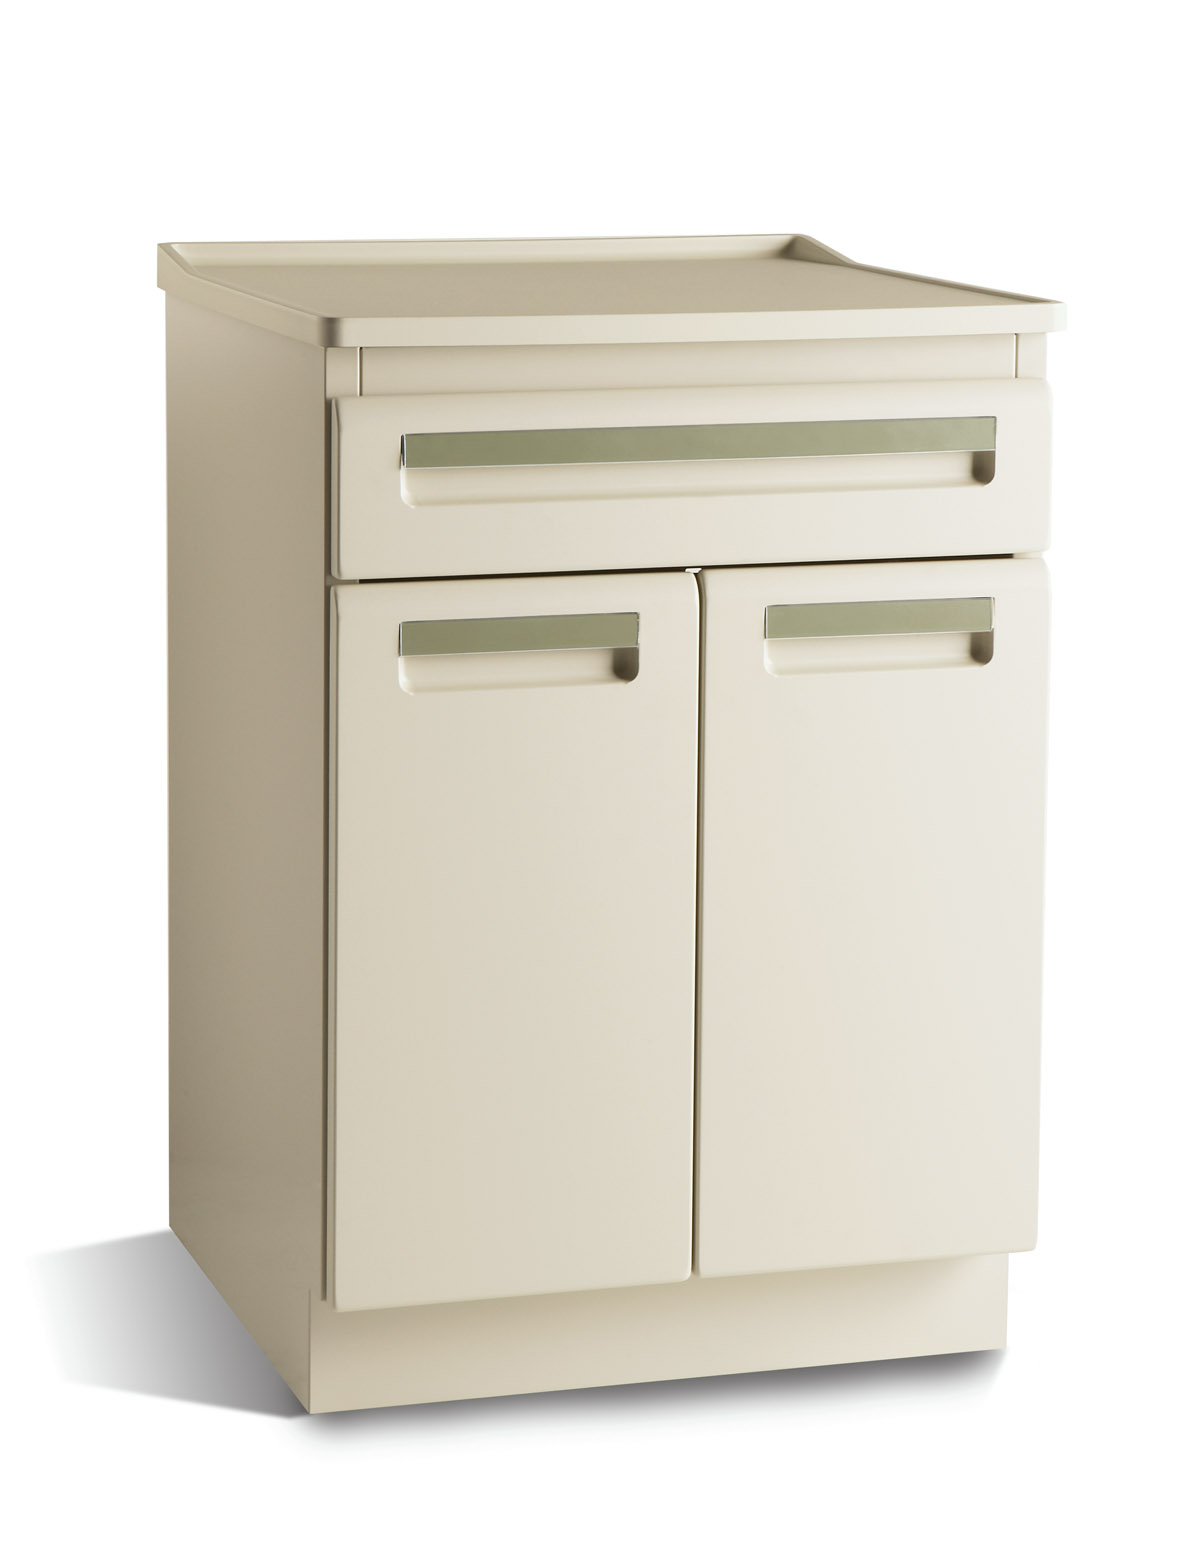 CABINET, TREATMENT, MIDMARK 6060, W/SHELF, ARCTIC